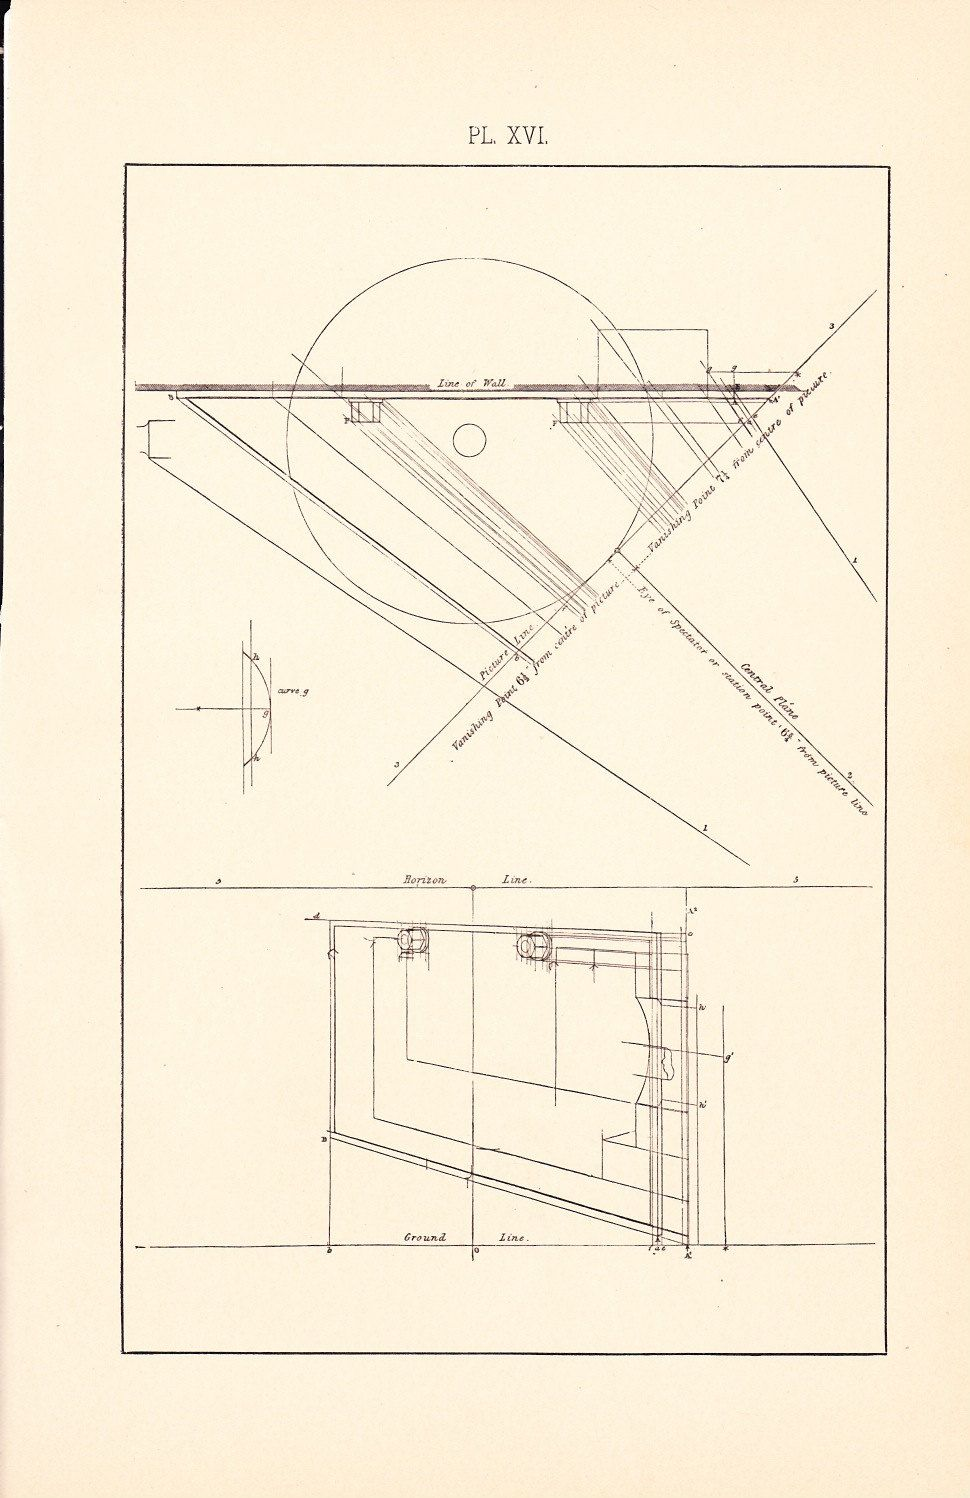 1886 technical drawing antique math geometric mechanical drafting 1886 technical drawing antique math geometric mechanical drafting interior design blueprint art illustration framing 100 malvernweather Image collections